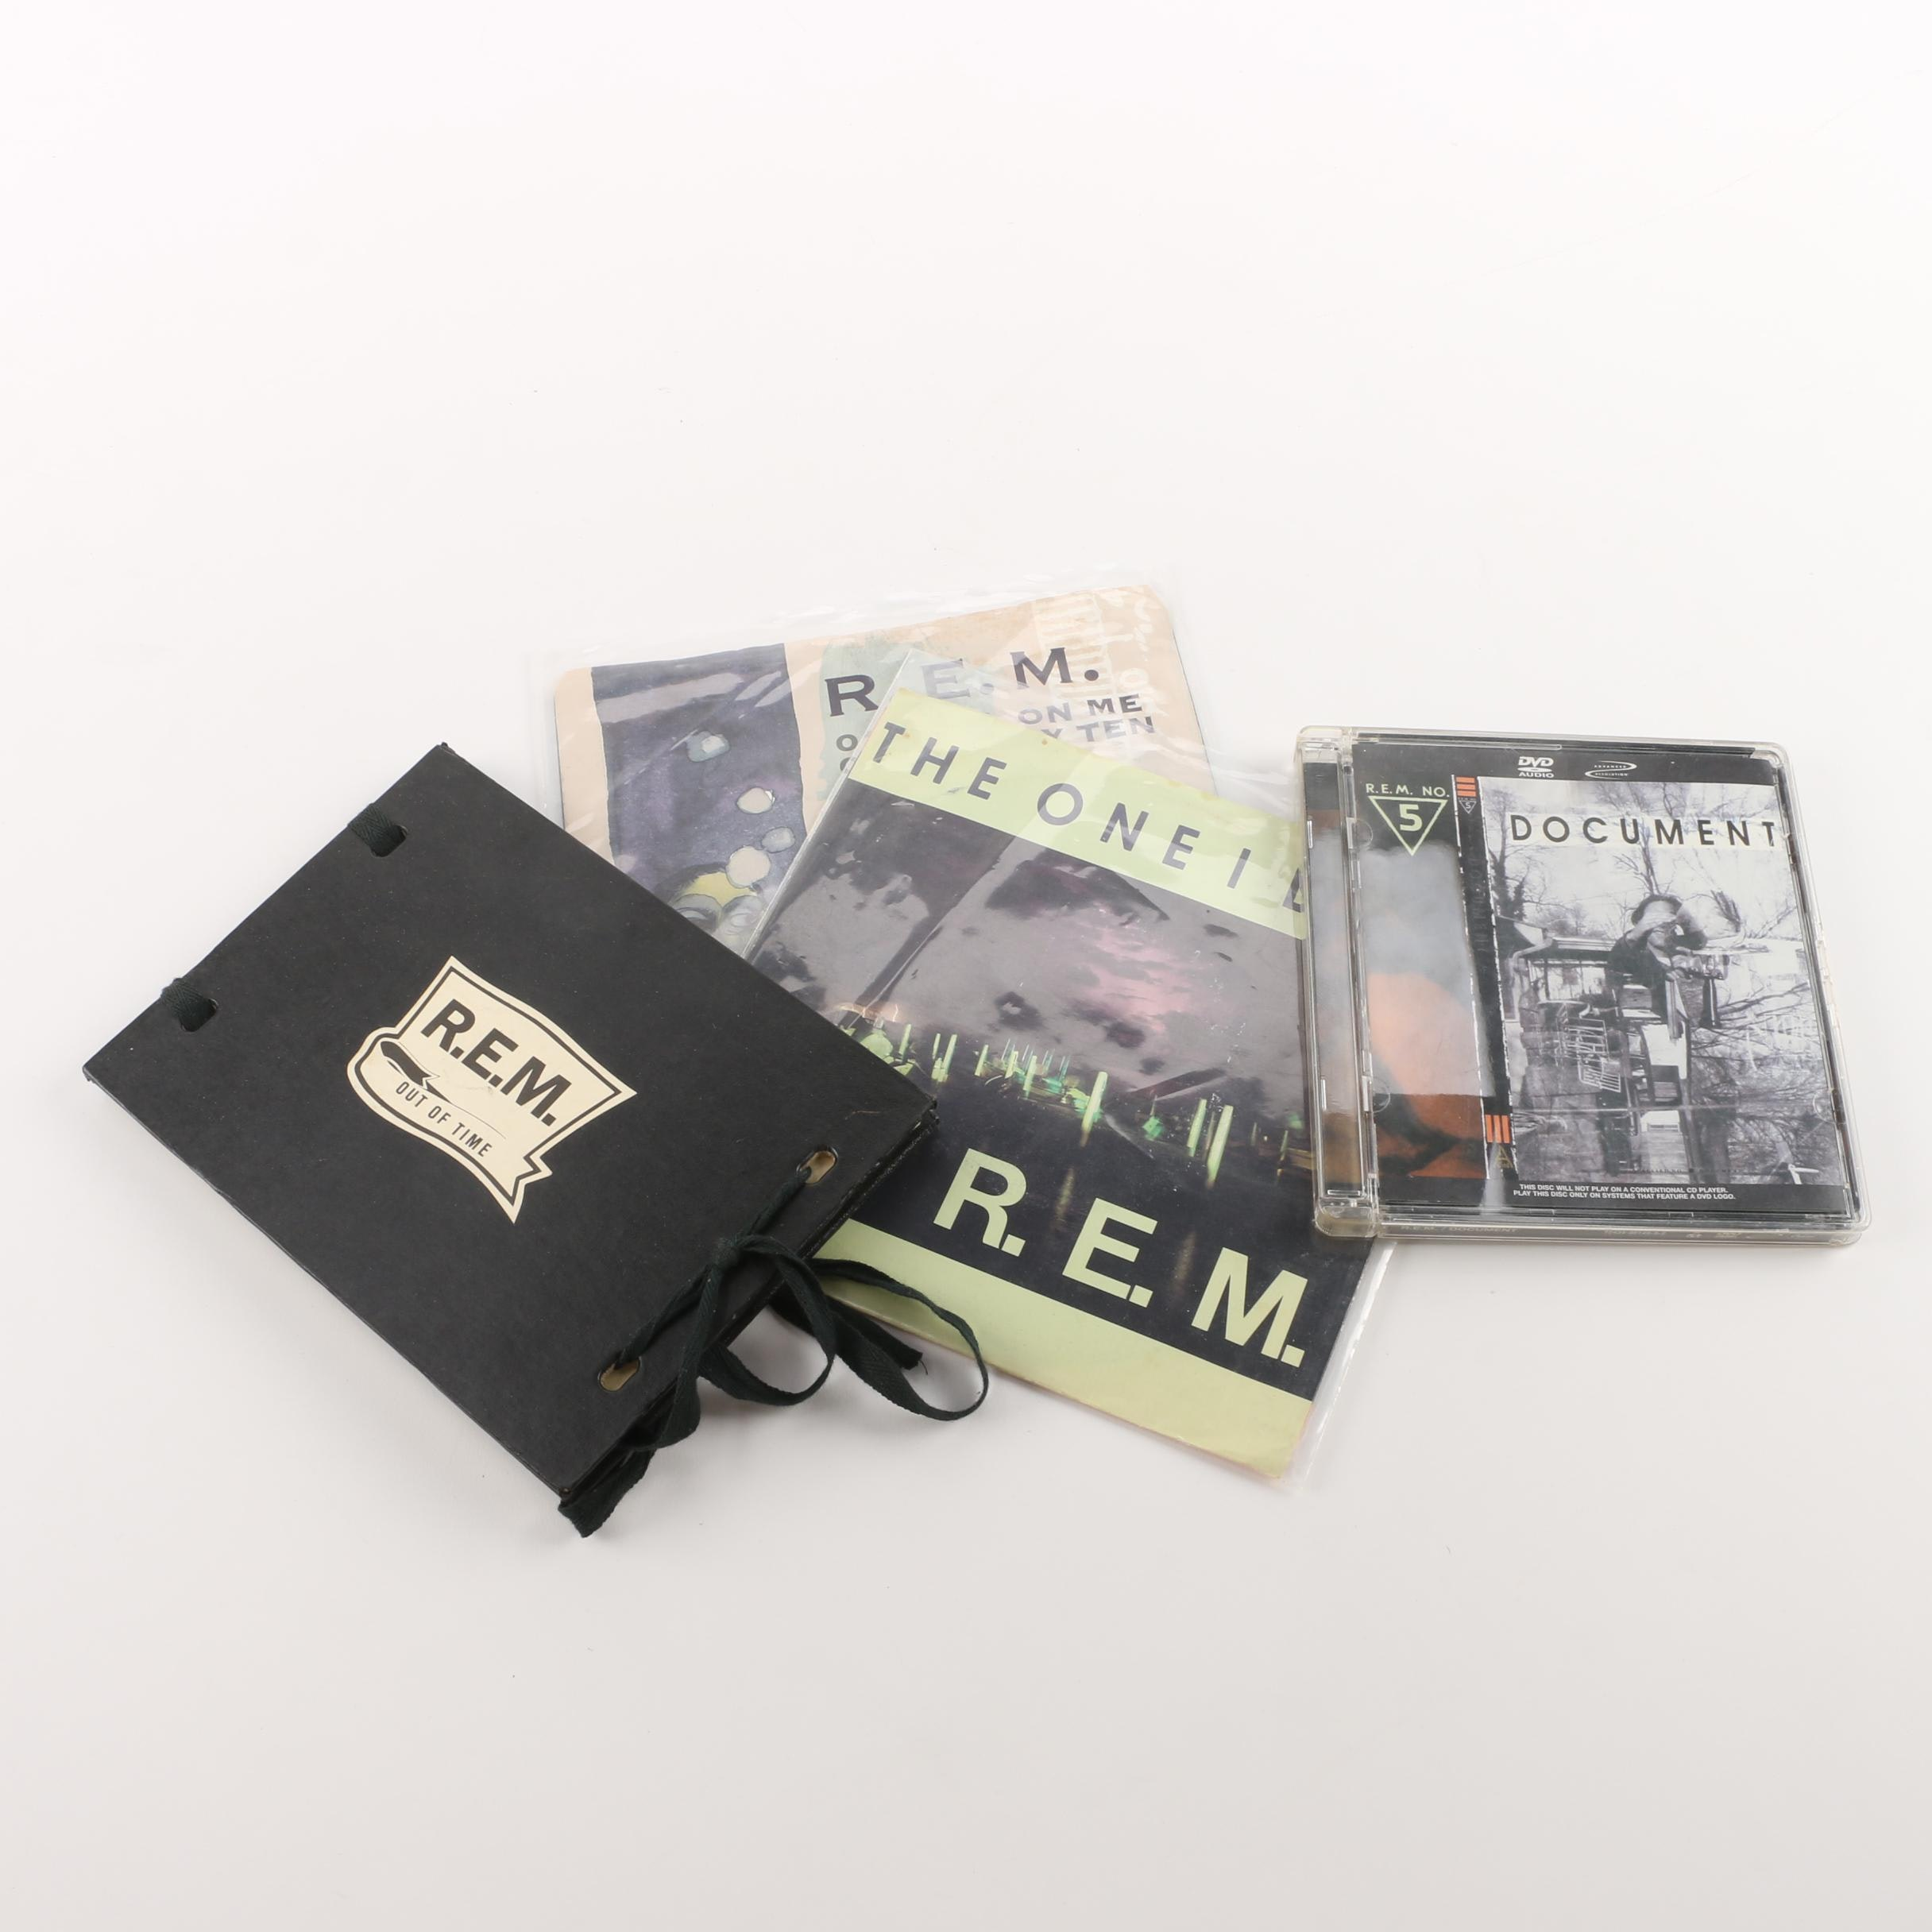 """REM CDs and 7"""" Records, Including Limited Edition """"Out of Time"""" Postcards and CD"""